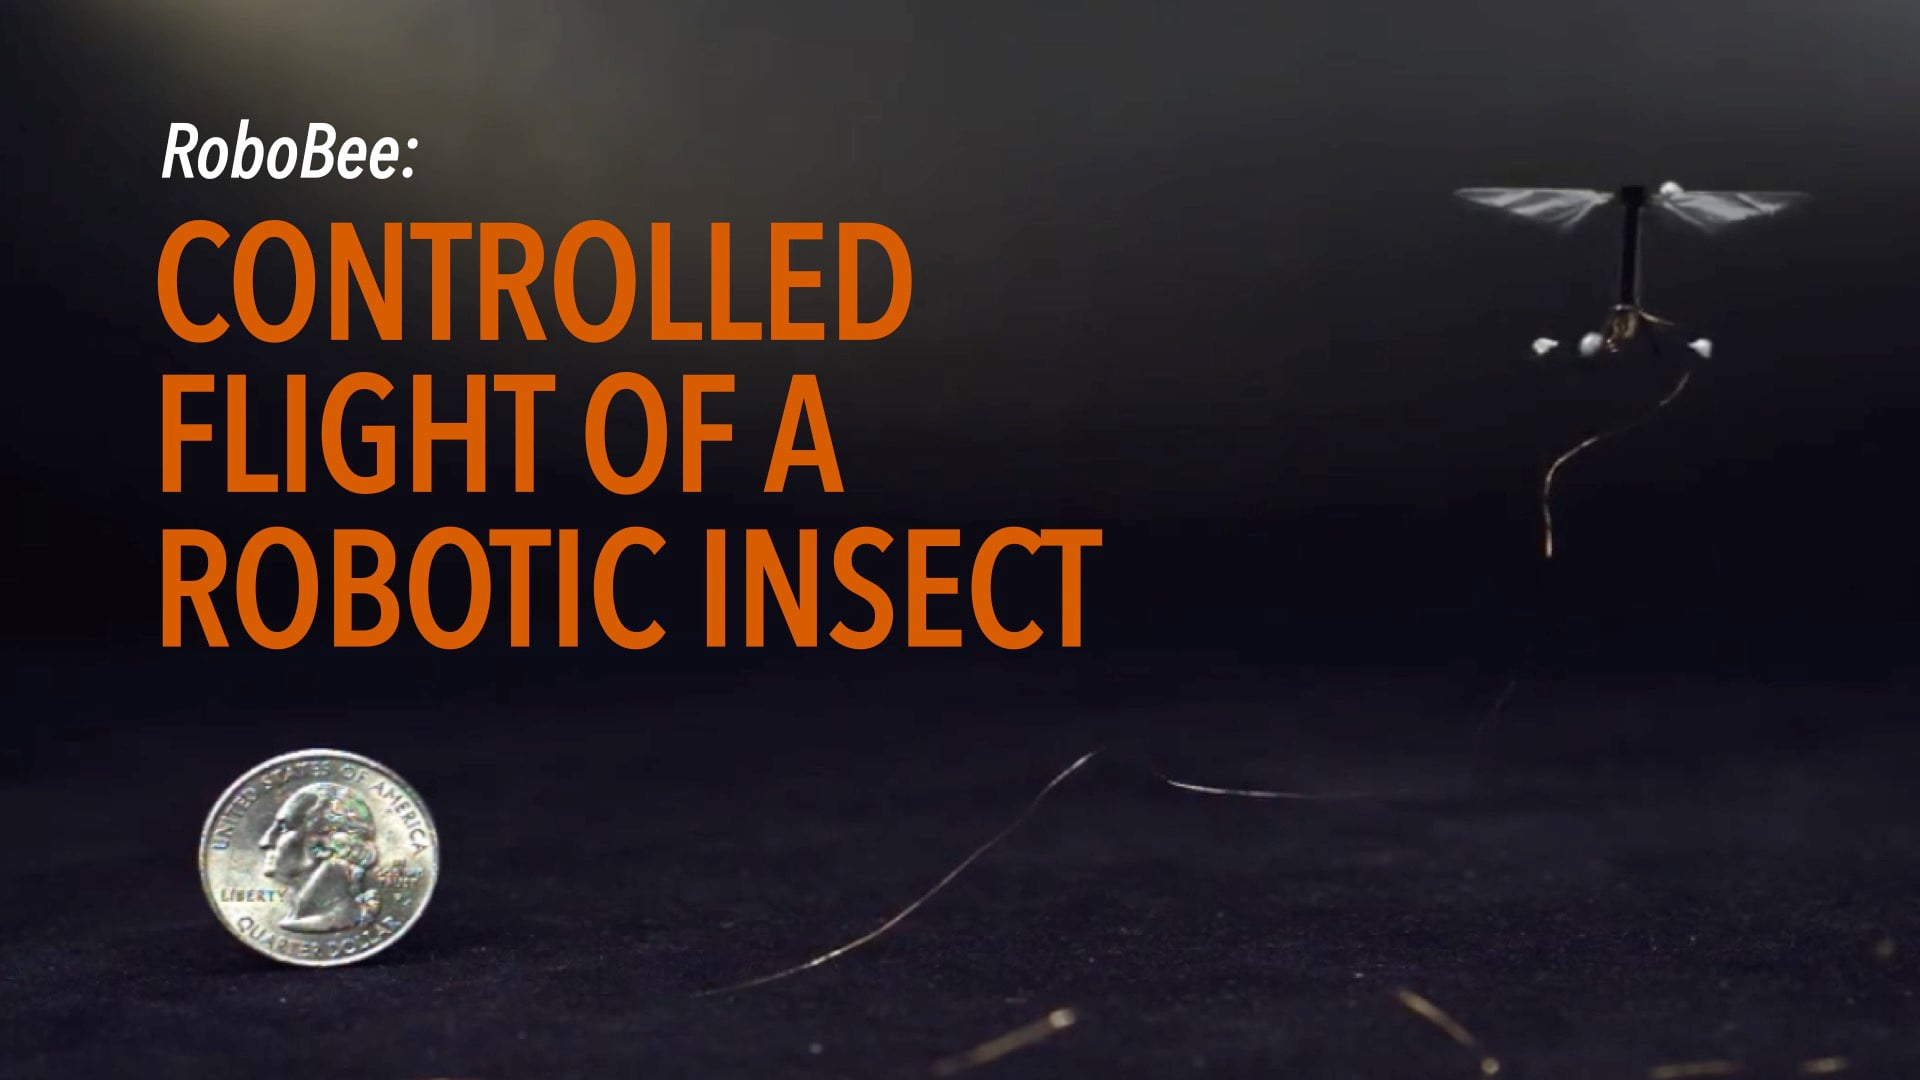 RoboBee: Controlled flight of a robotic insect